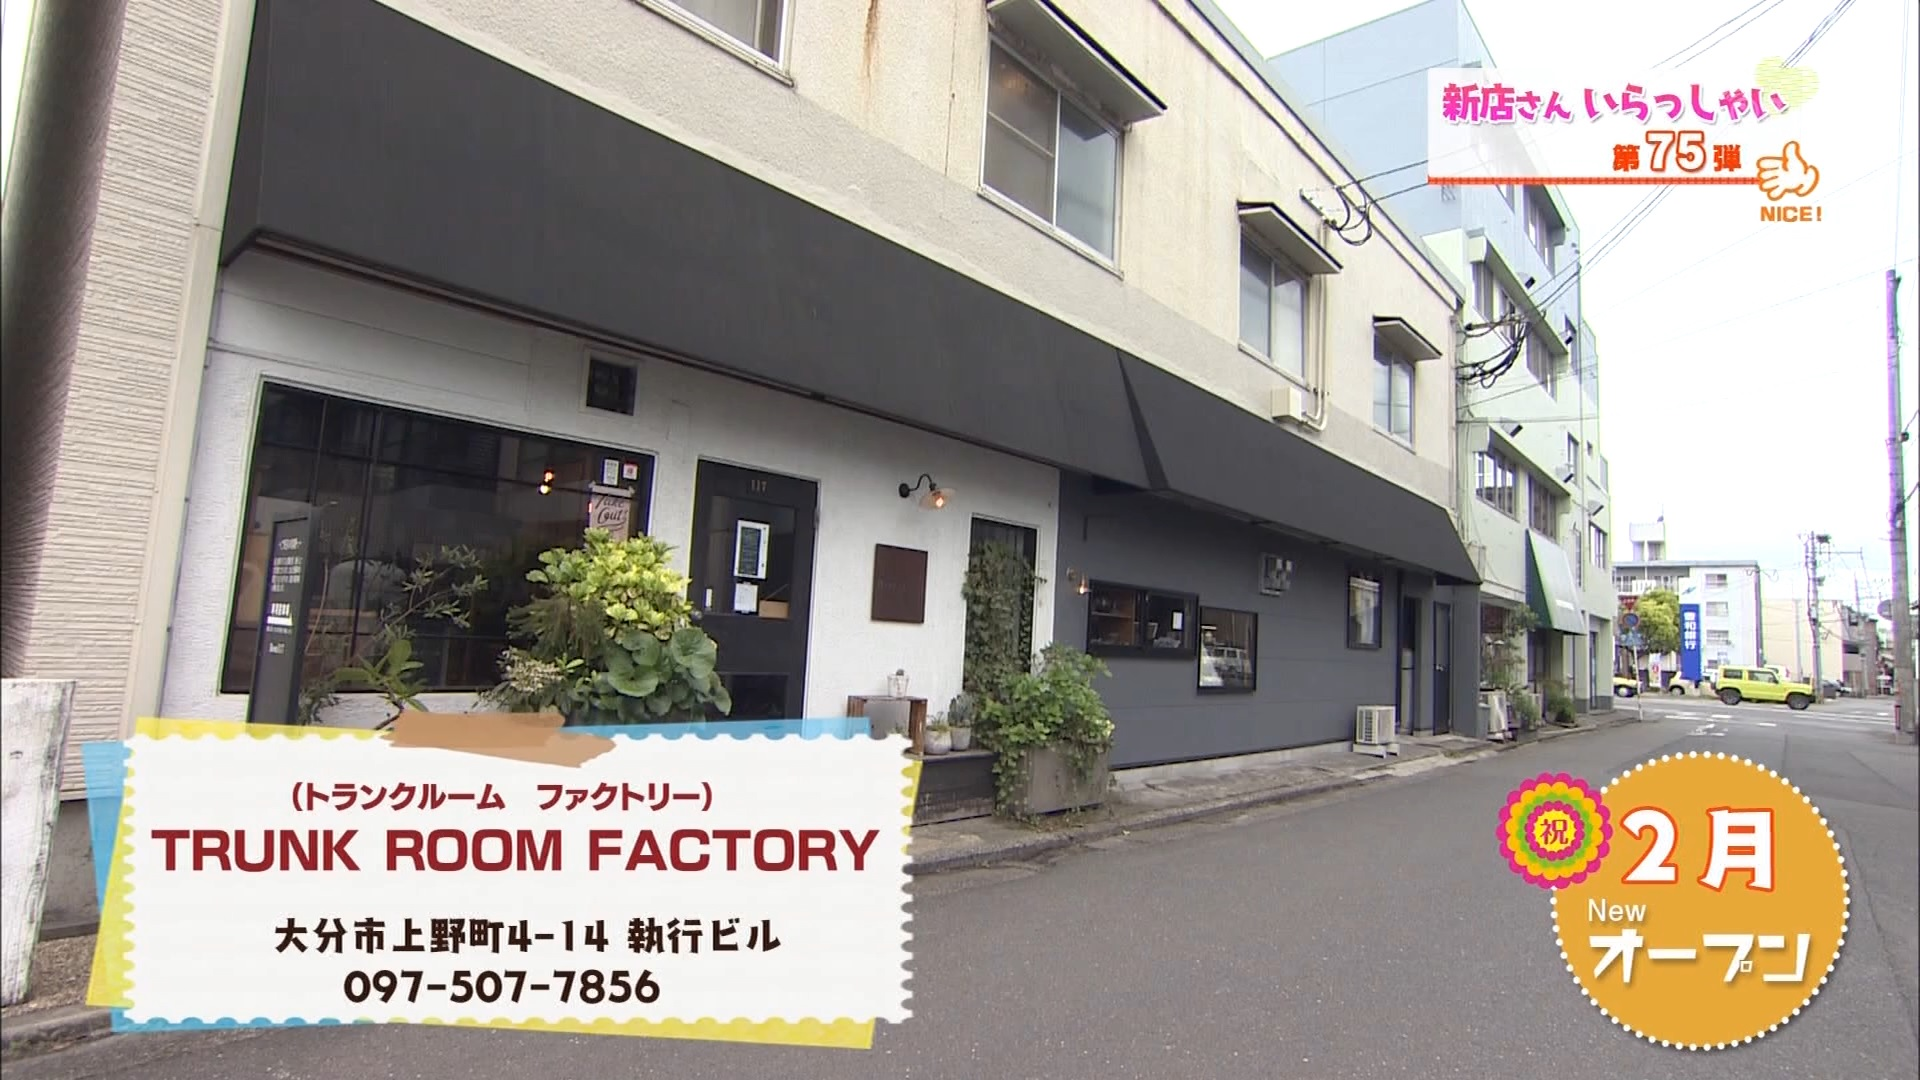 TRUNK ROOM FACTORY